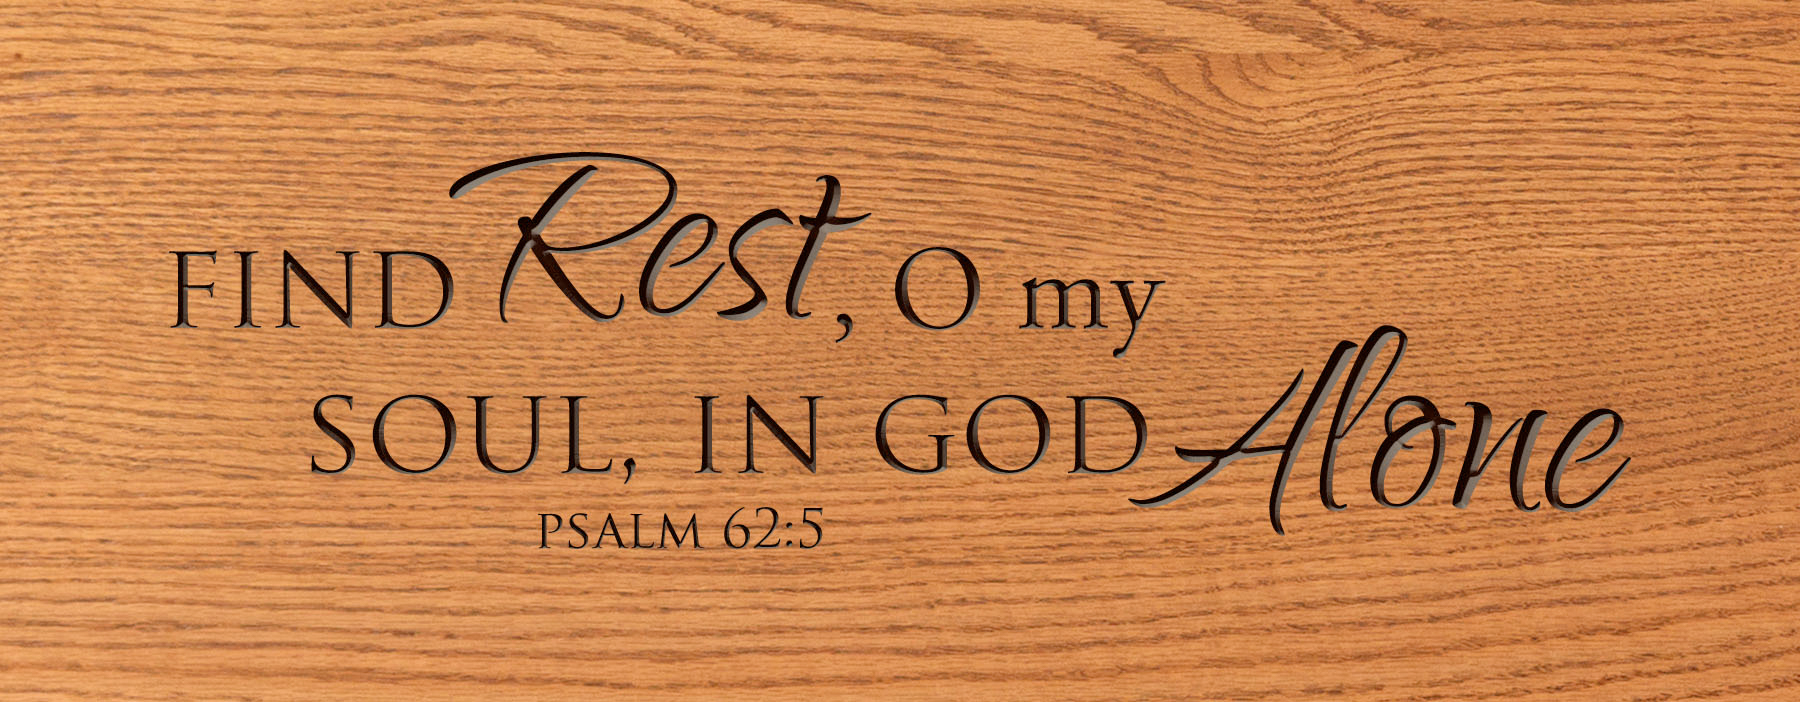 psalm 62 5 find rest o my soul in god